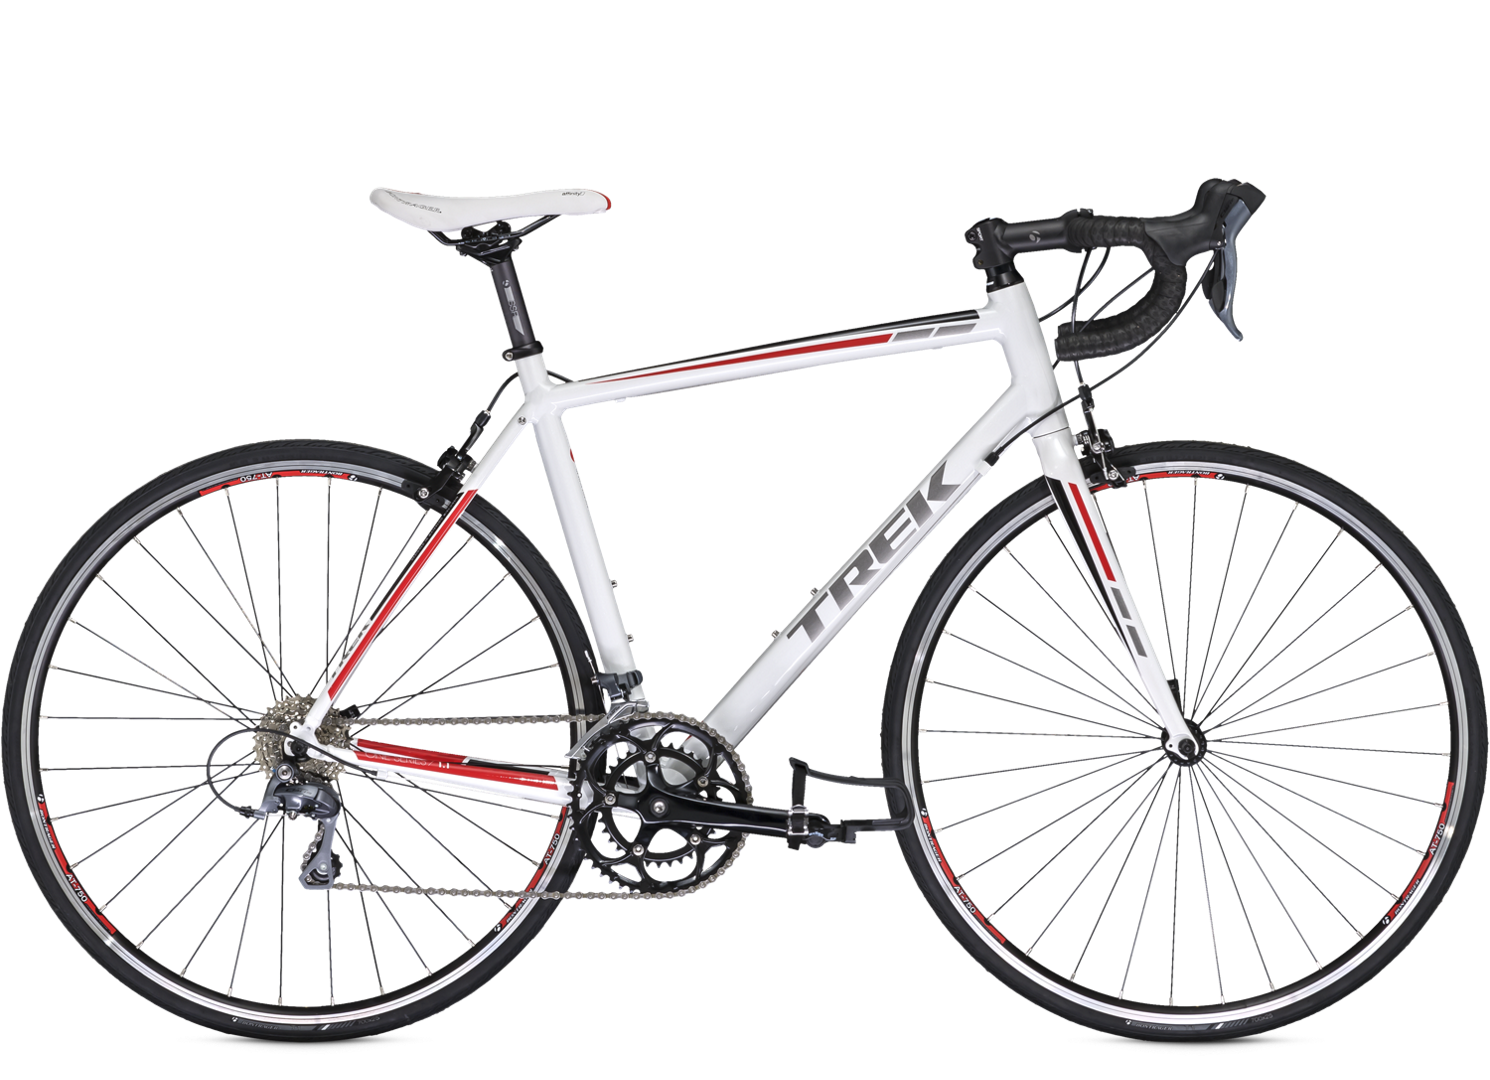 1 1 Trek Bicycle Msrp 769 99 Our All New 1 Series Aluminum